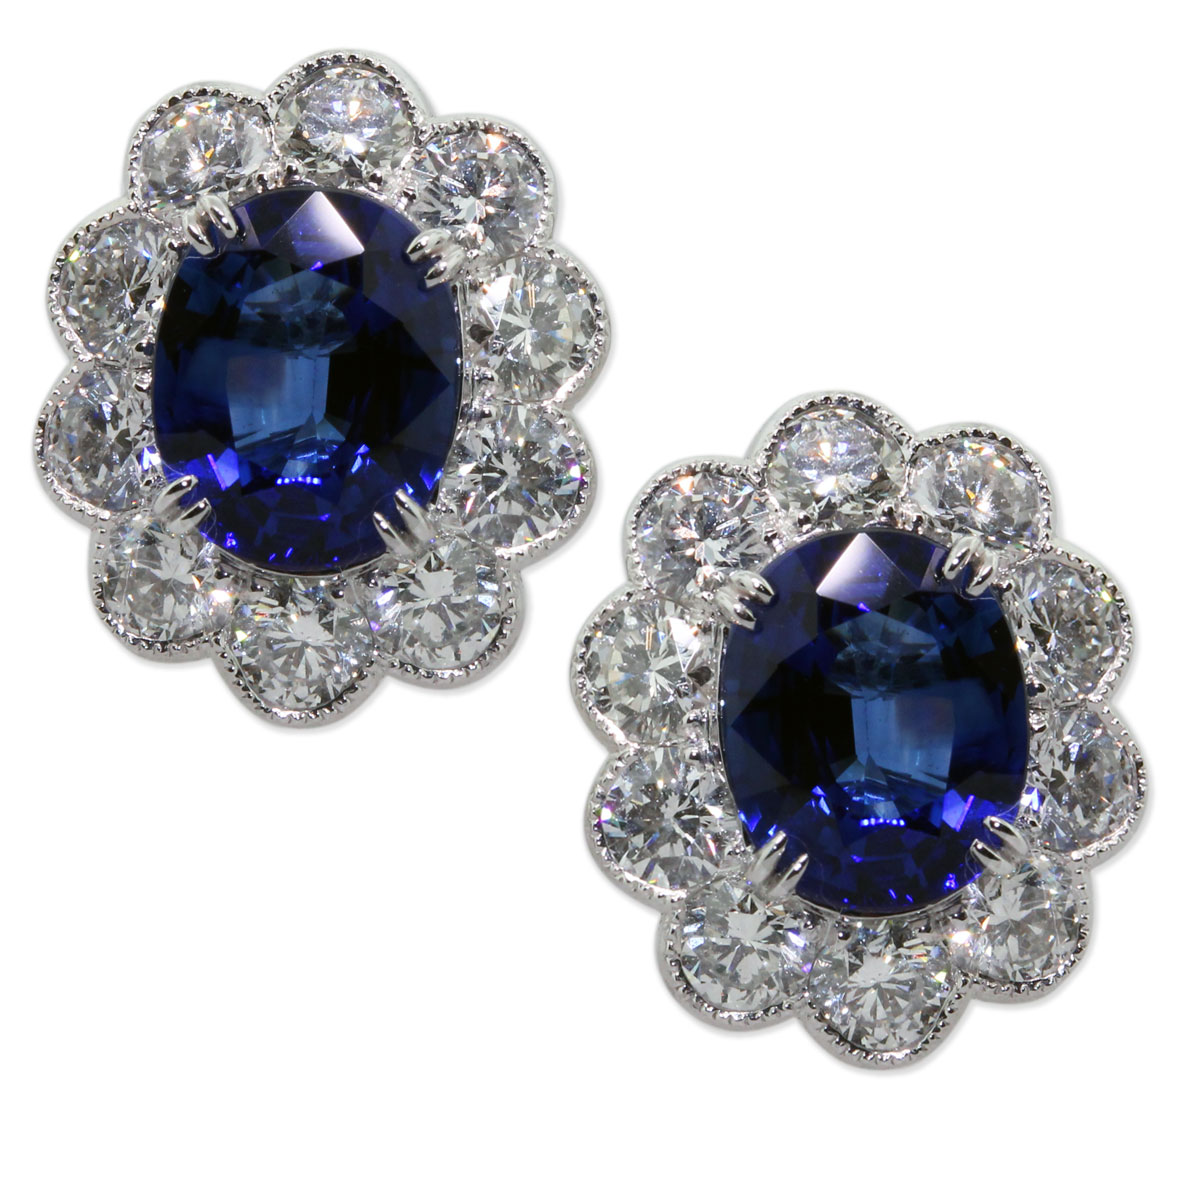 424 Carat Blue Sapphire And Diamond Floral Button Earrings